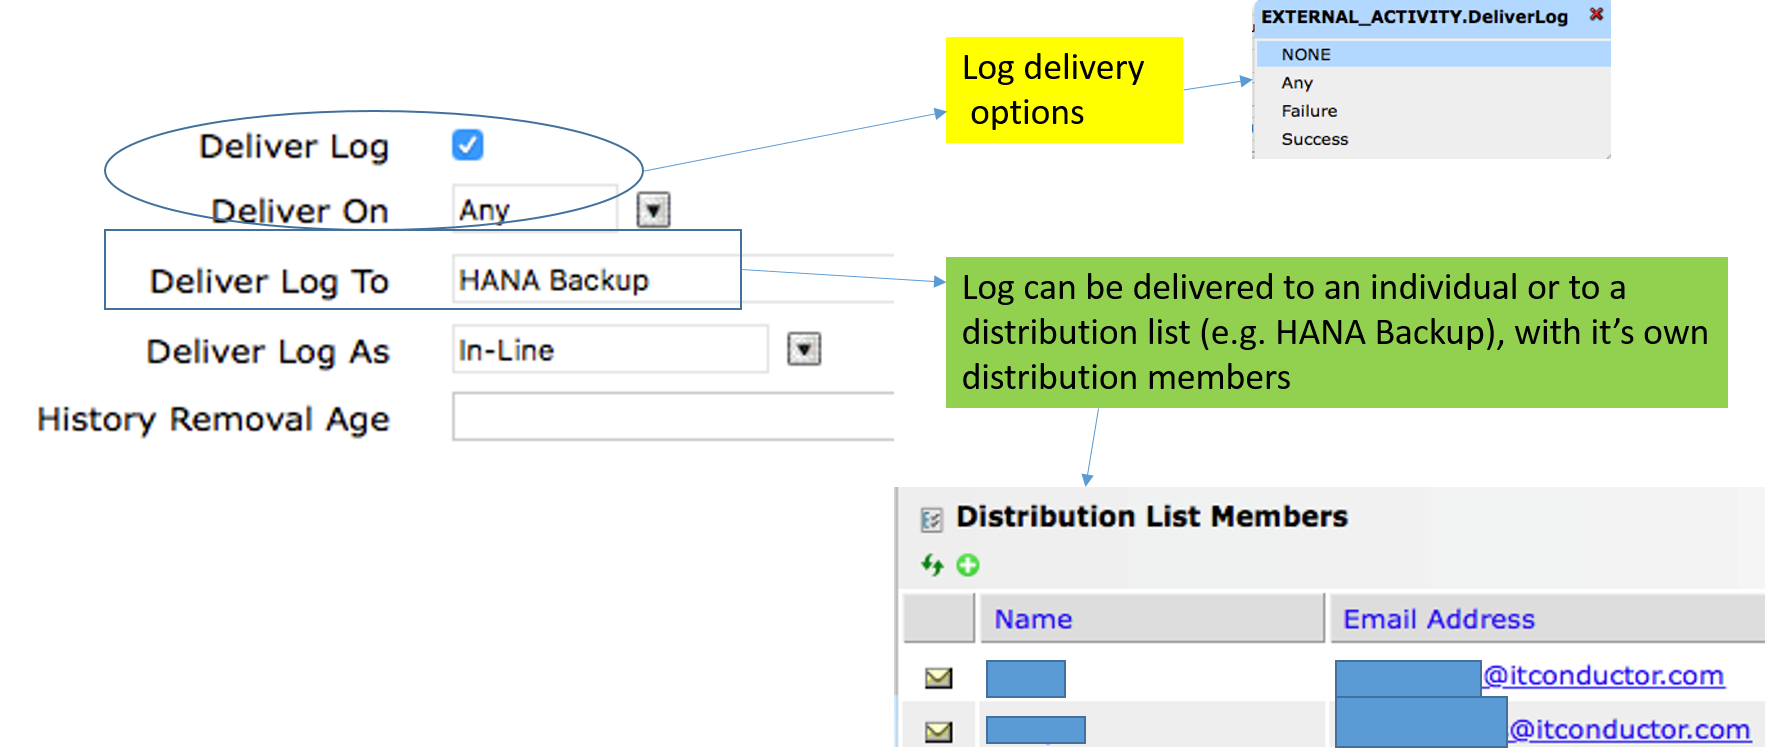 IT-Conductor SAP Basis Automation HANA Backup Create SQL Job - Activity 2